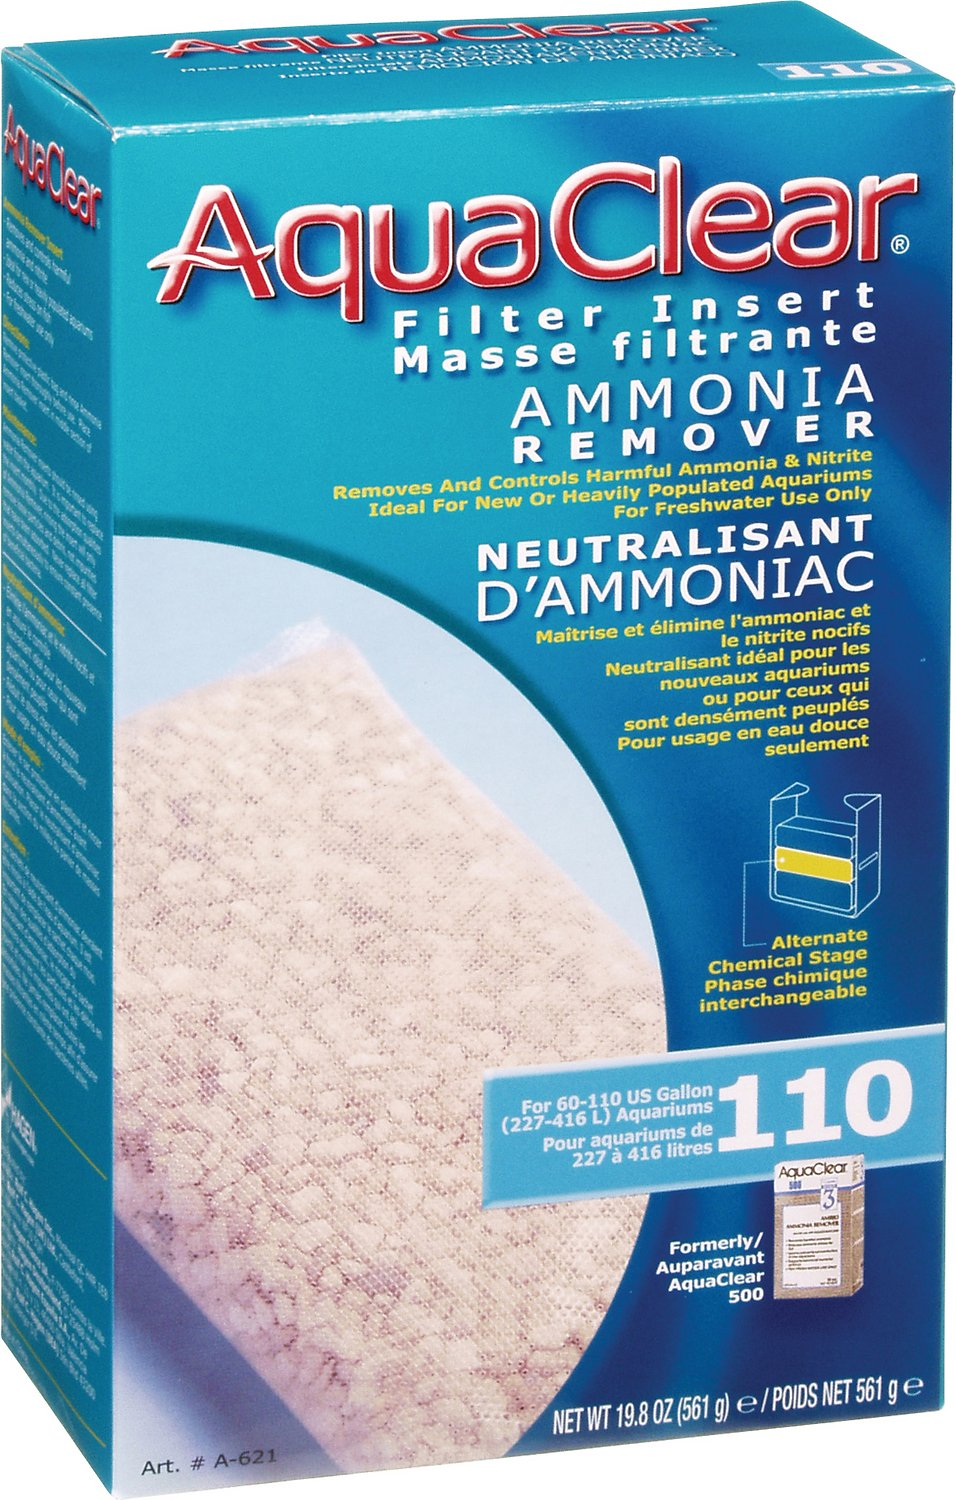 AquaClear Ammonia Remover Filter Insert, Size 110